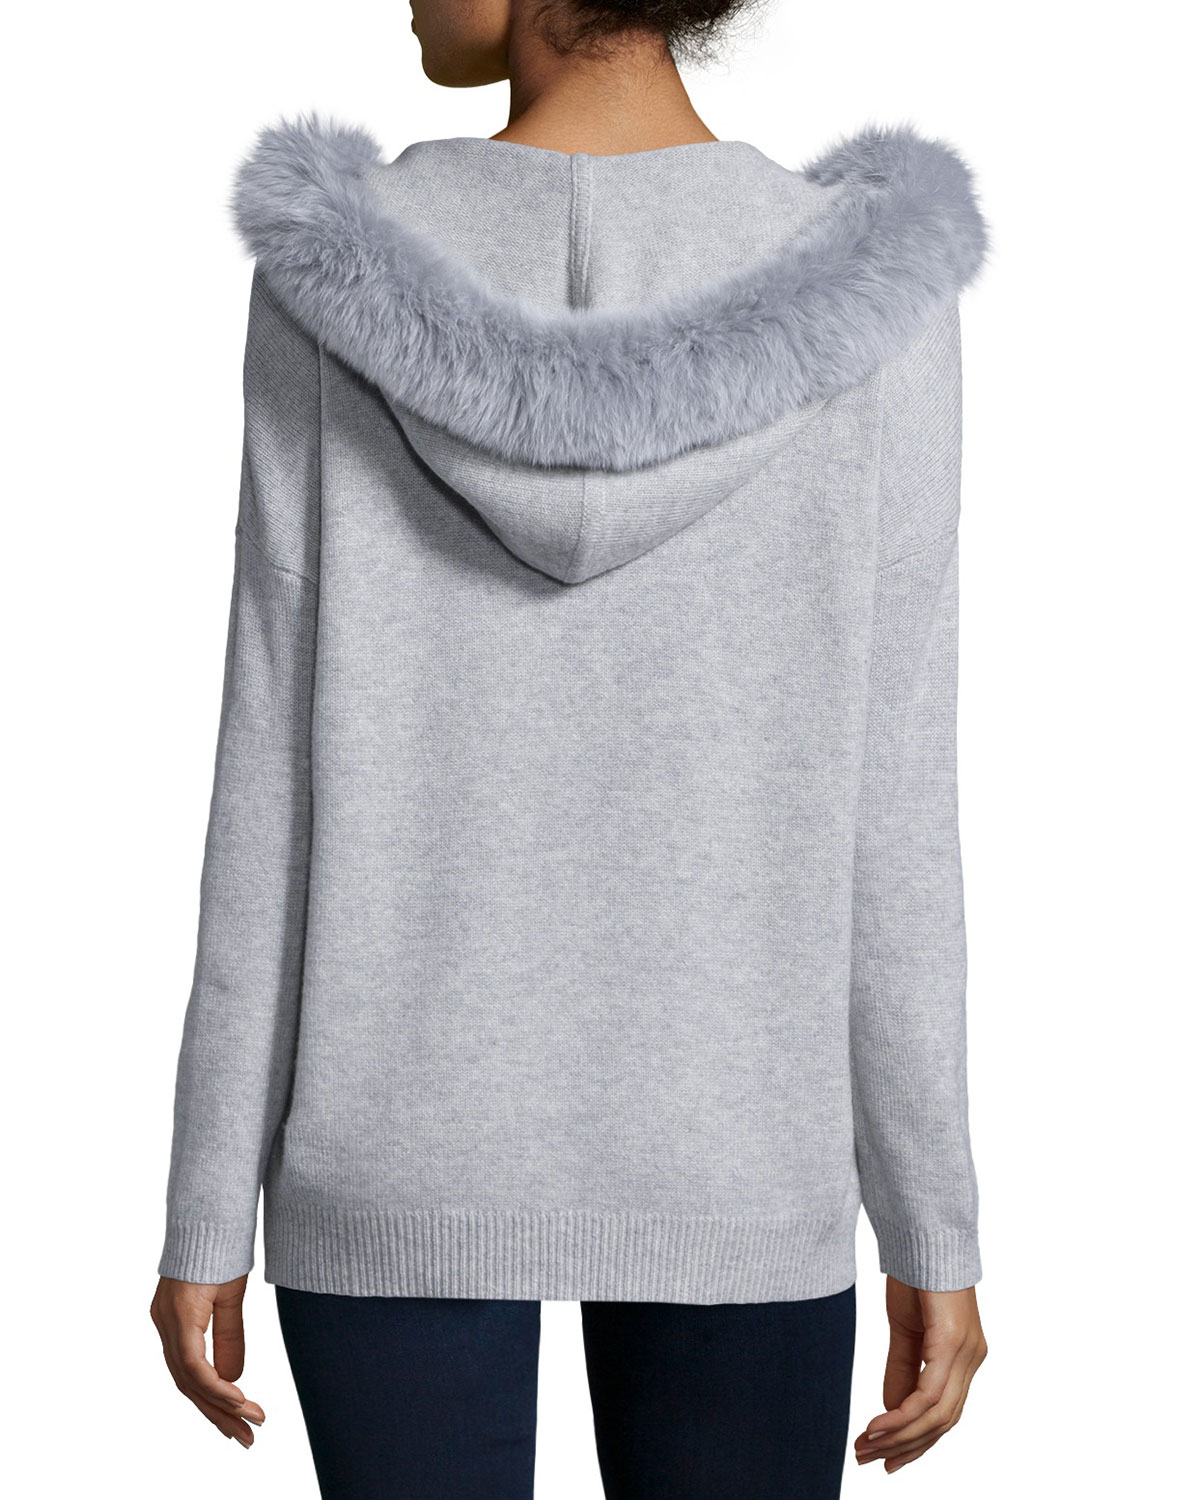 Nordstrom Womens Sweaters